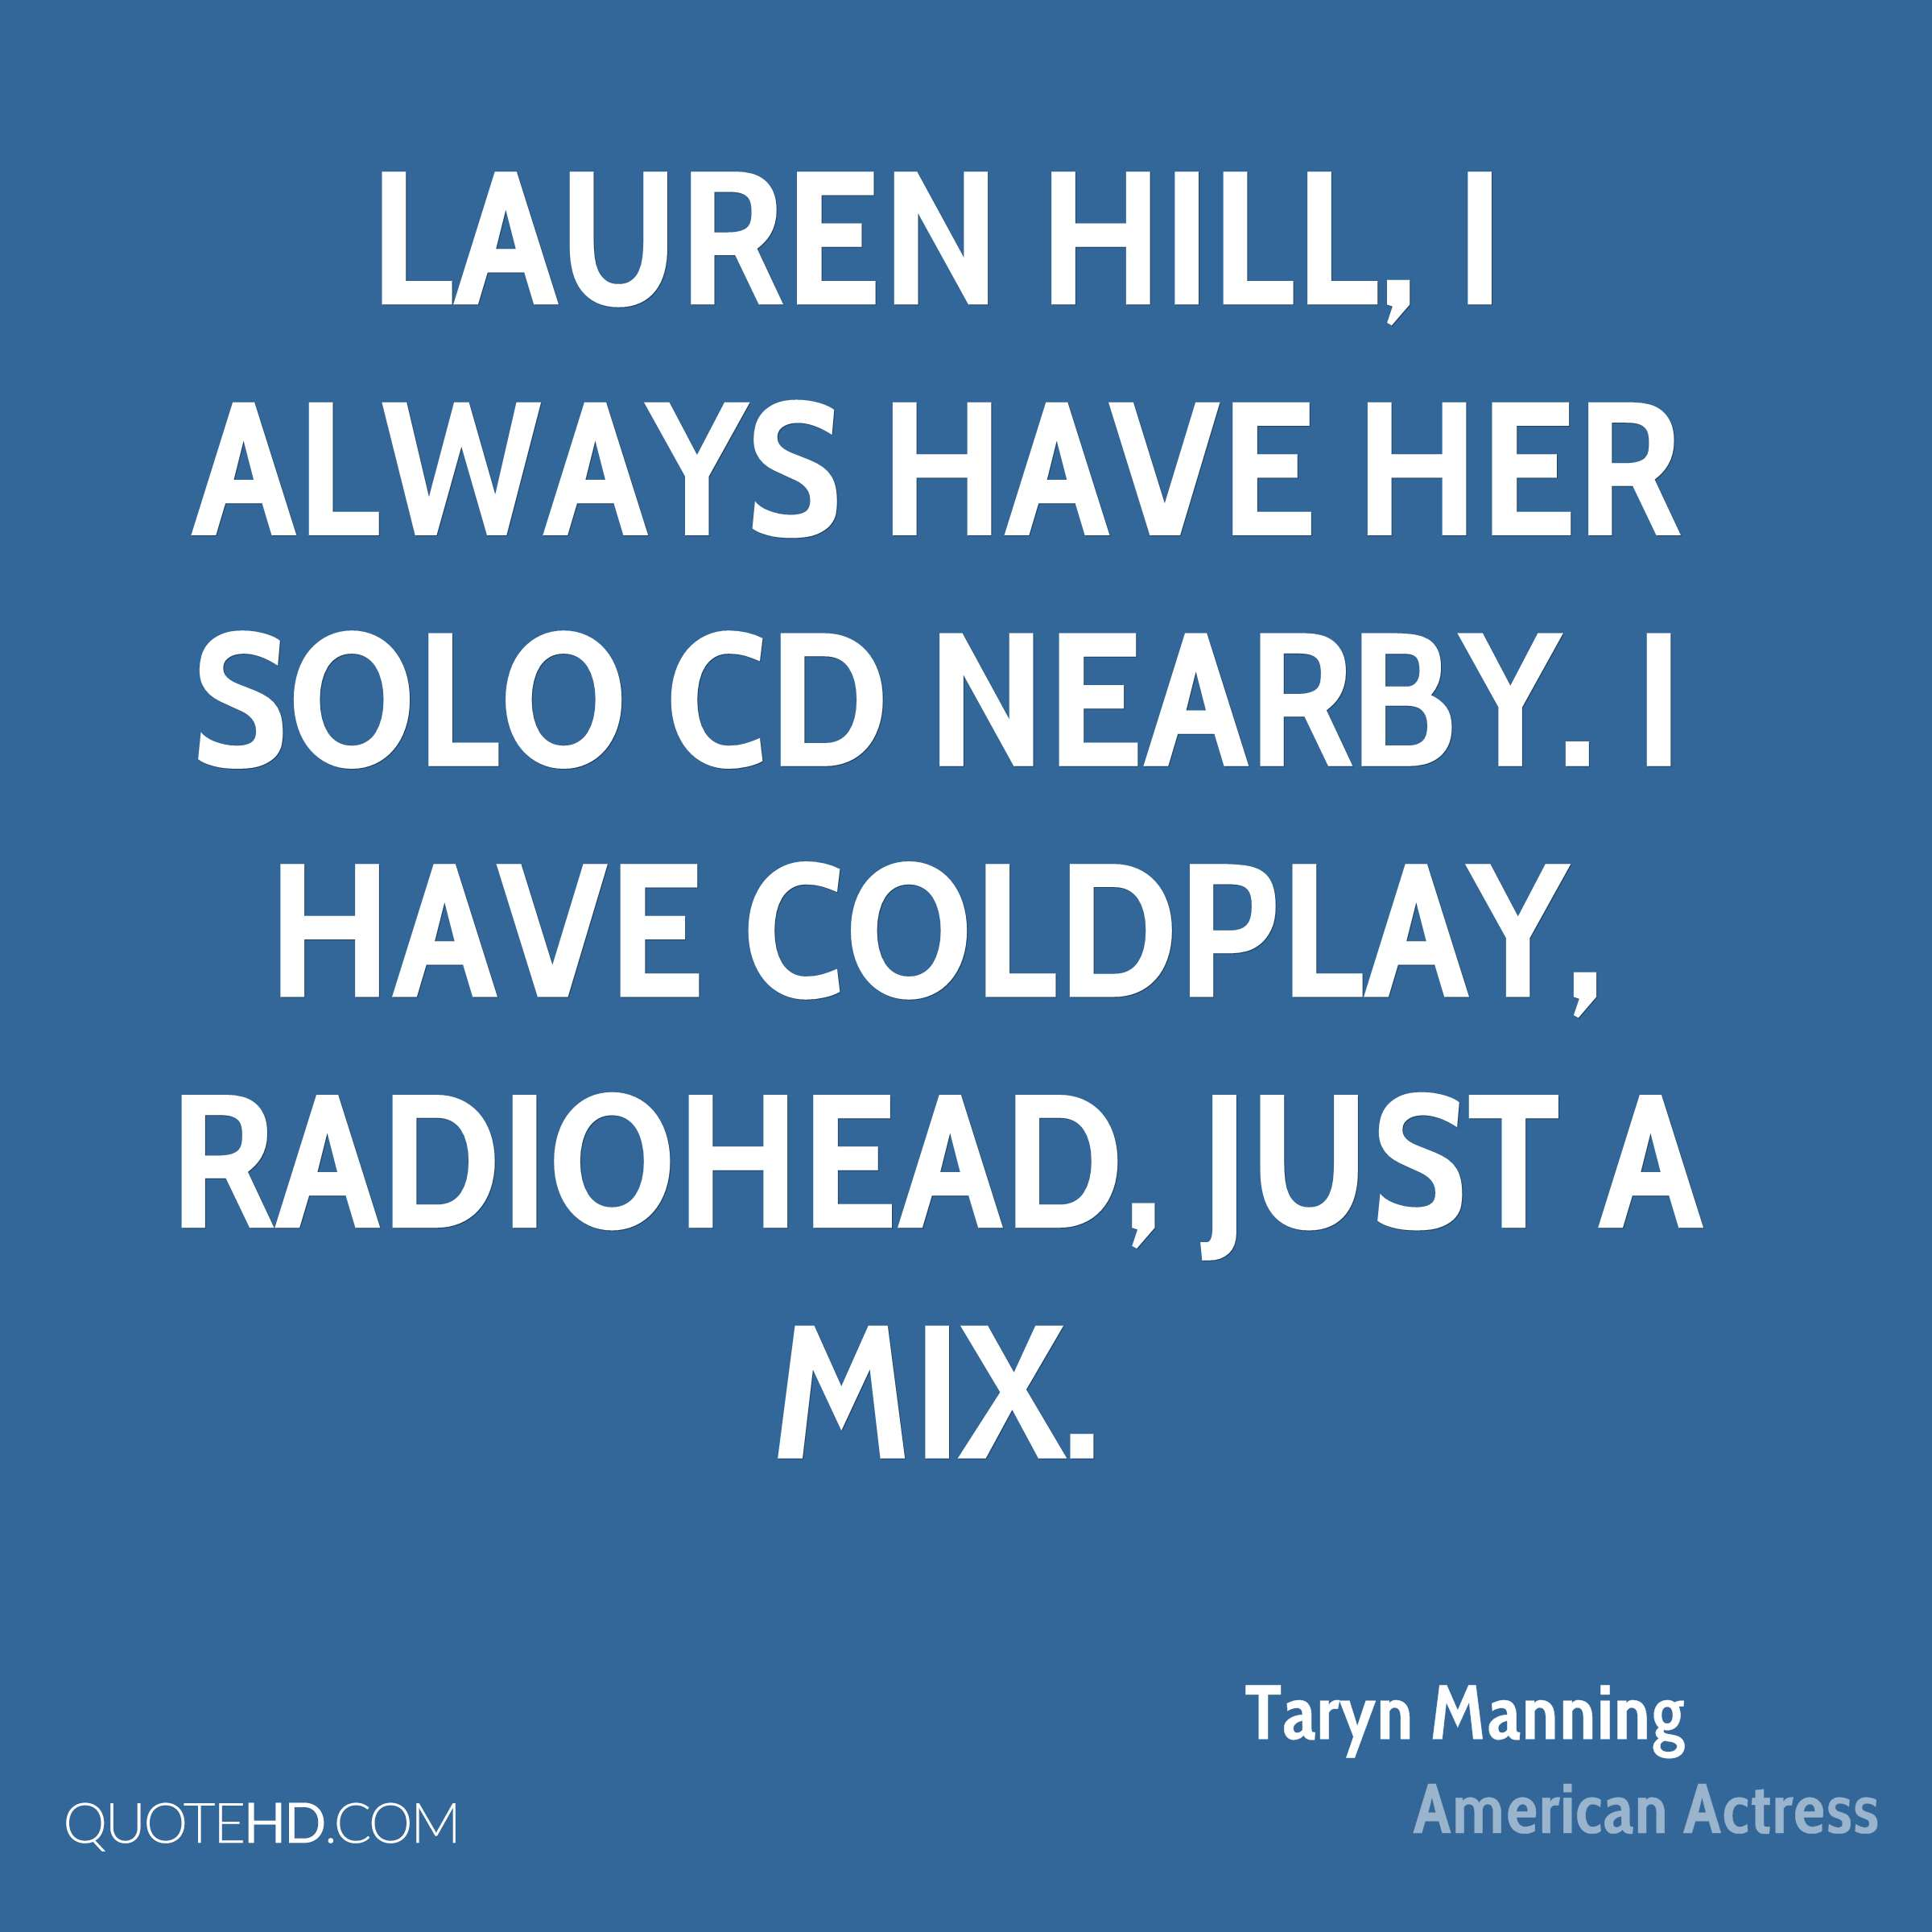 Lauren Hill, I always have her solo CD nearby. I have Coldplay, Radiohead, just a mix.